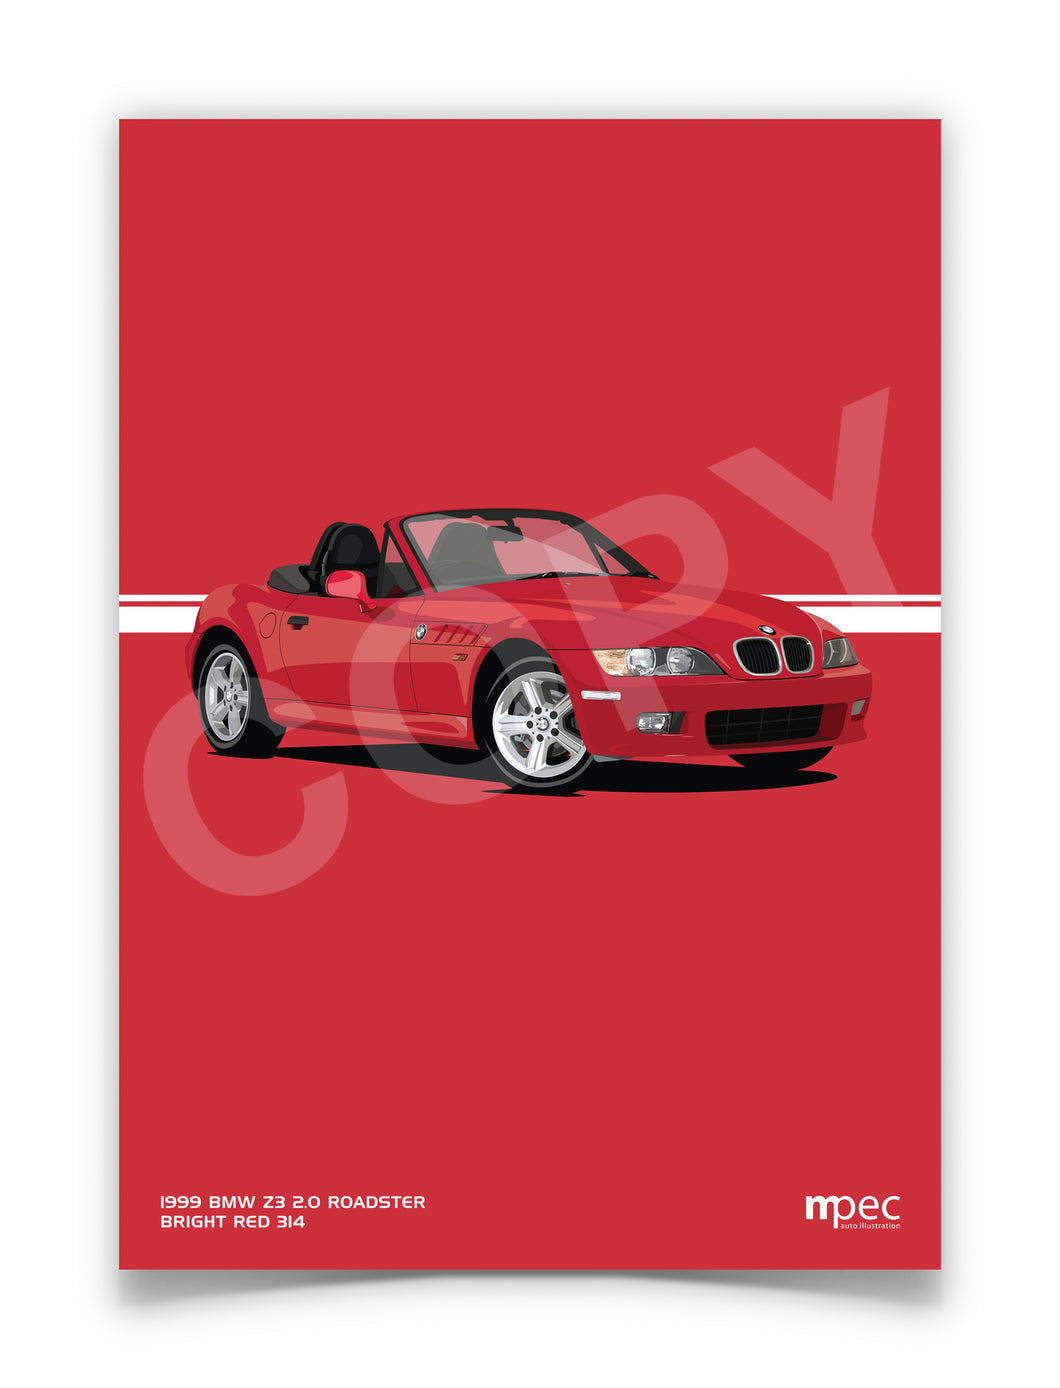 Print of 1999 BMW Z3 2.0 Roadster in Bright Red 314